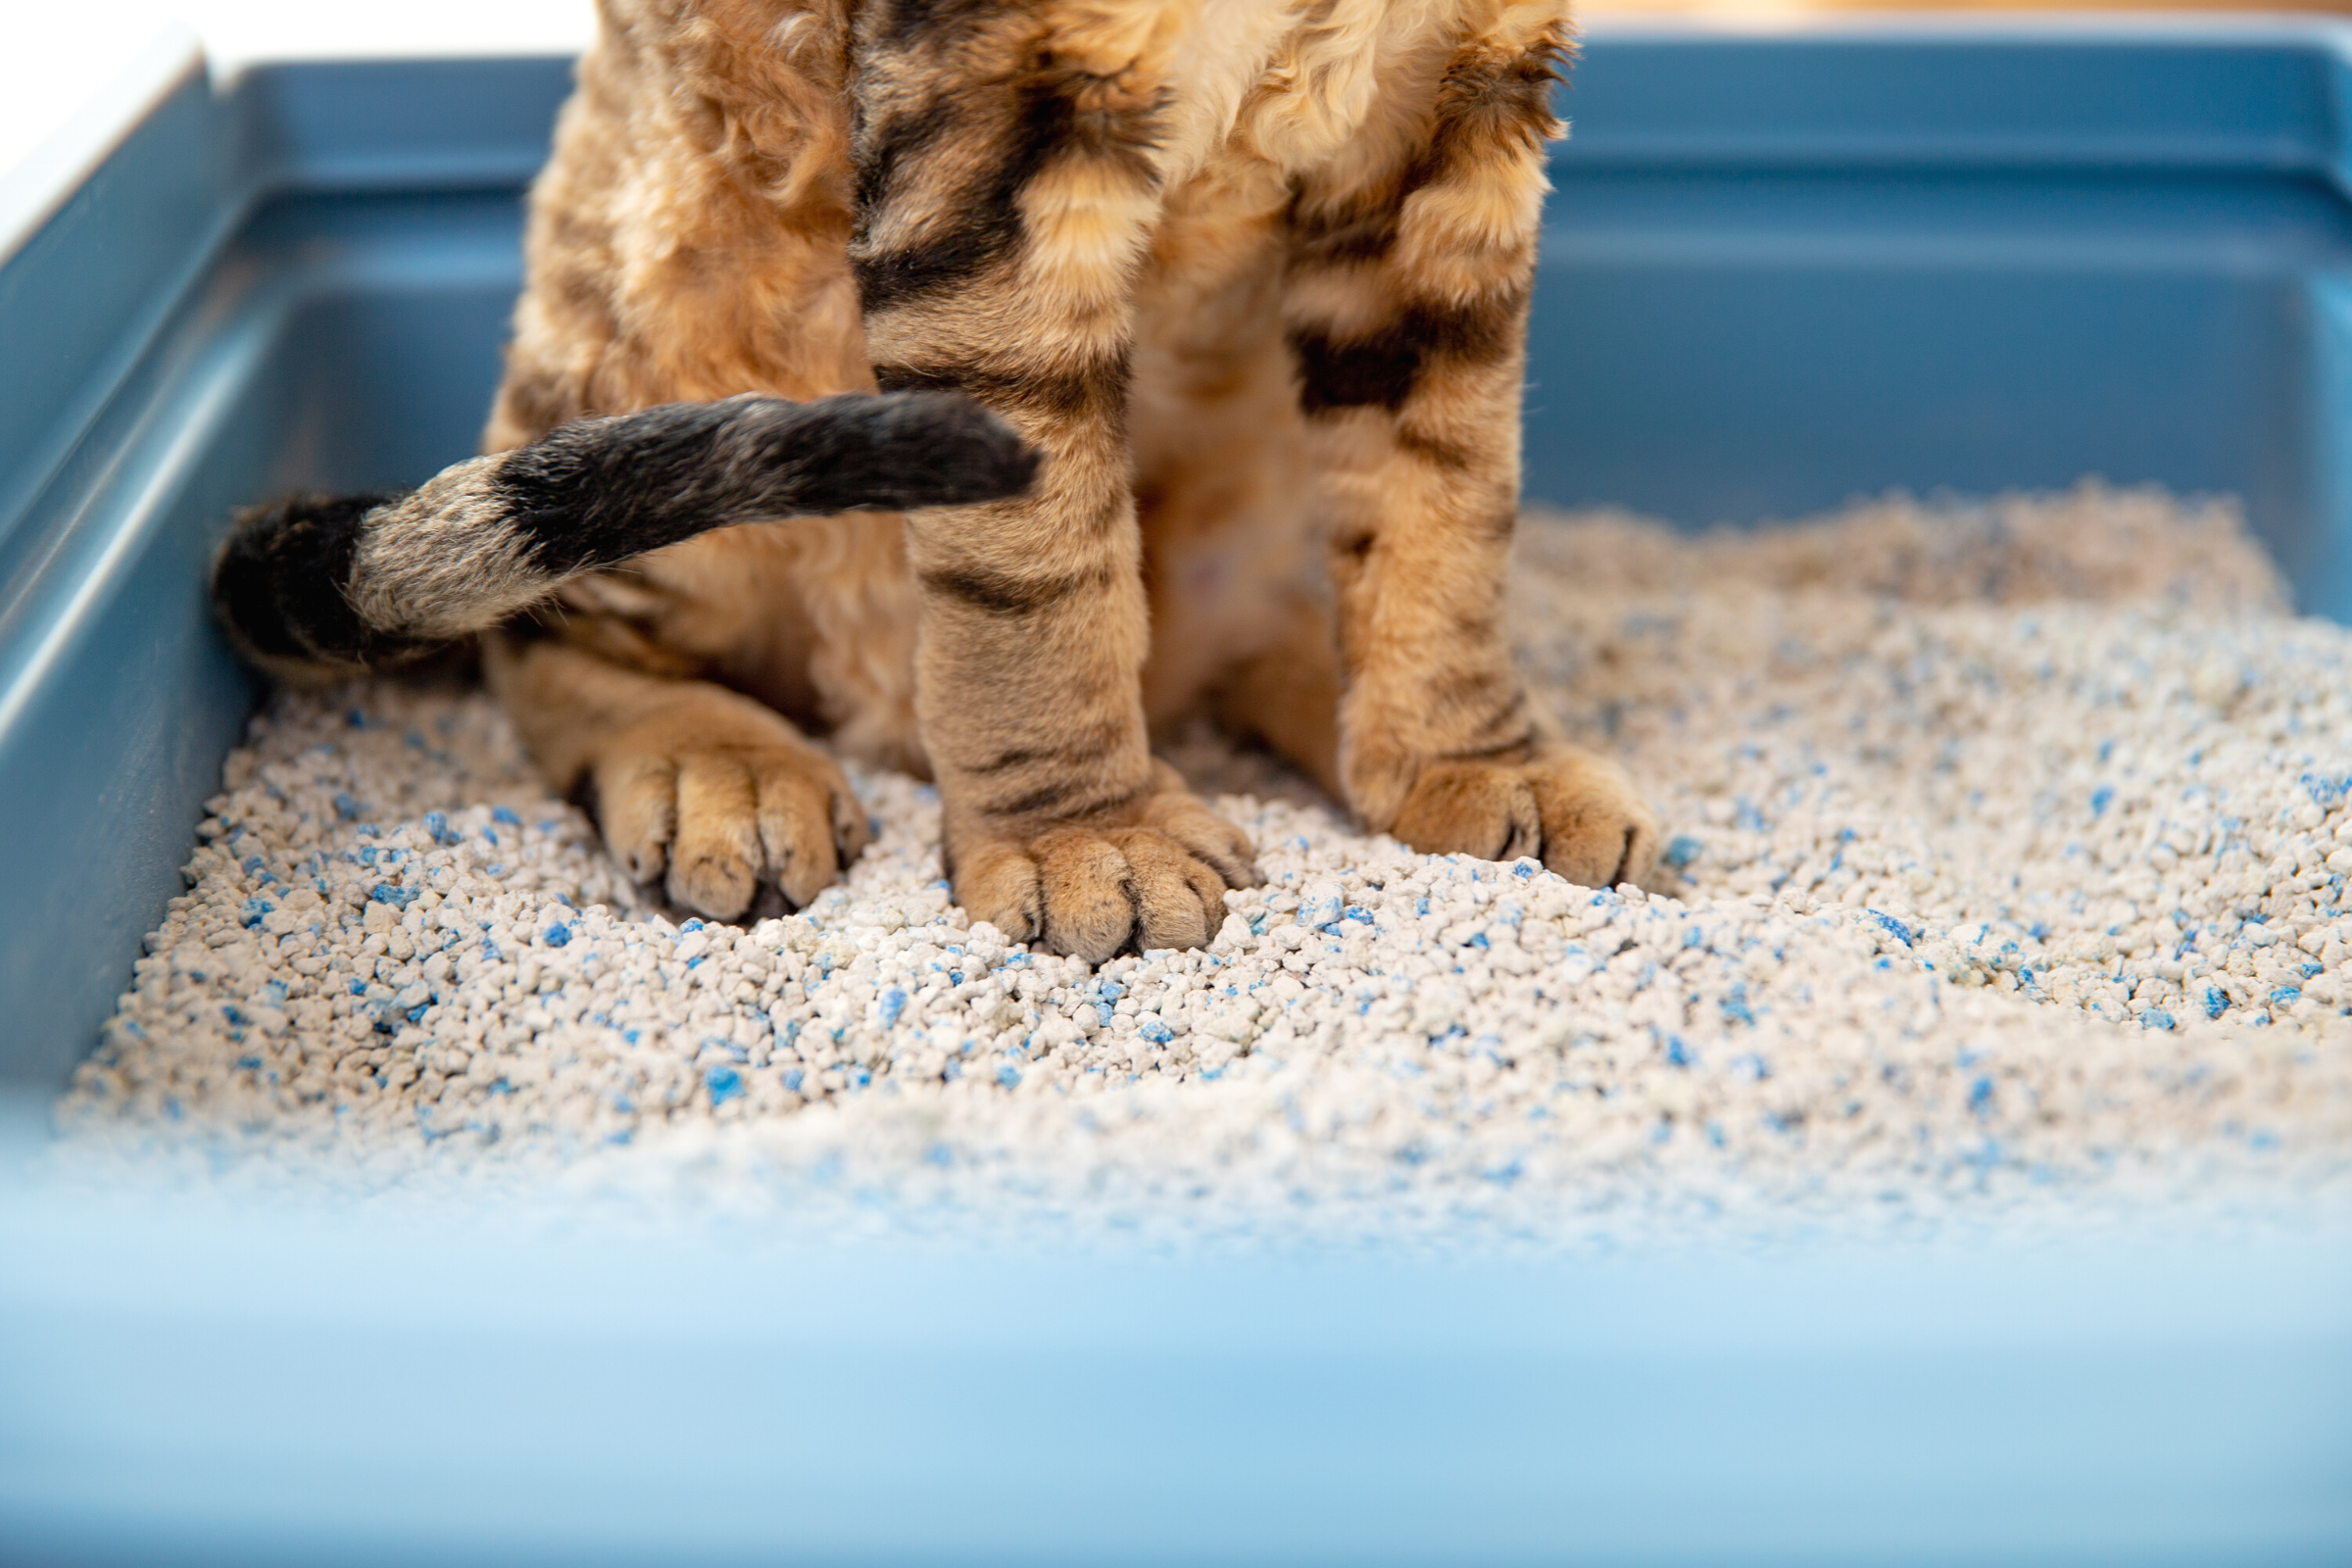 How Safe Is Your Cat's Litter Box?